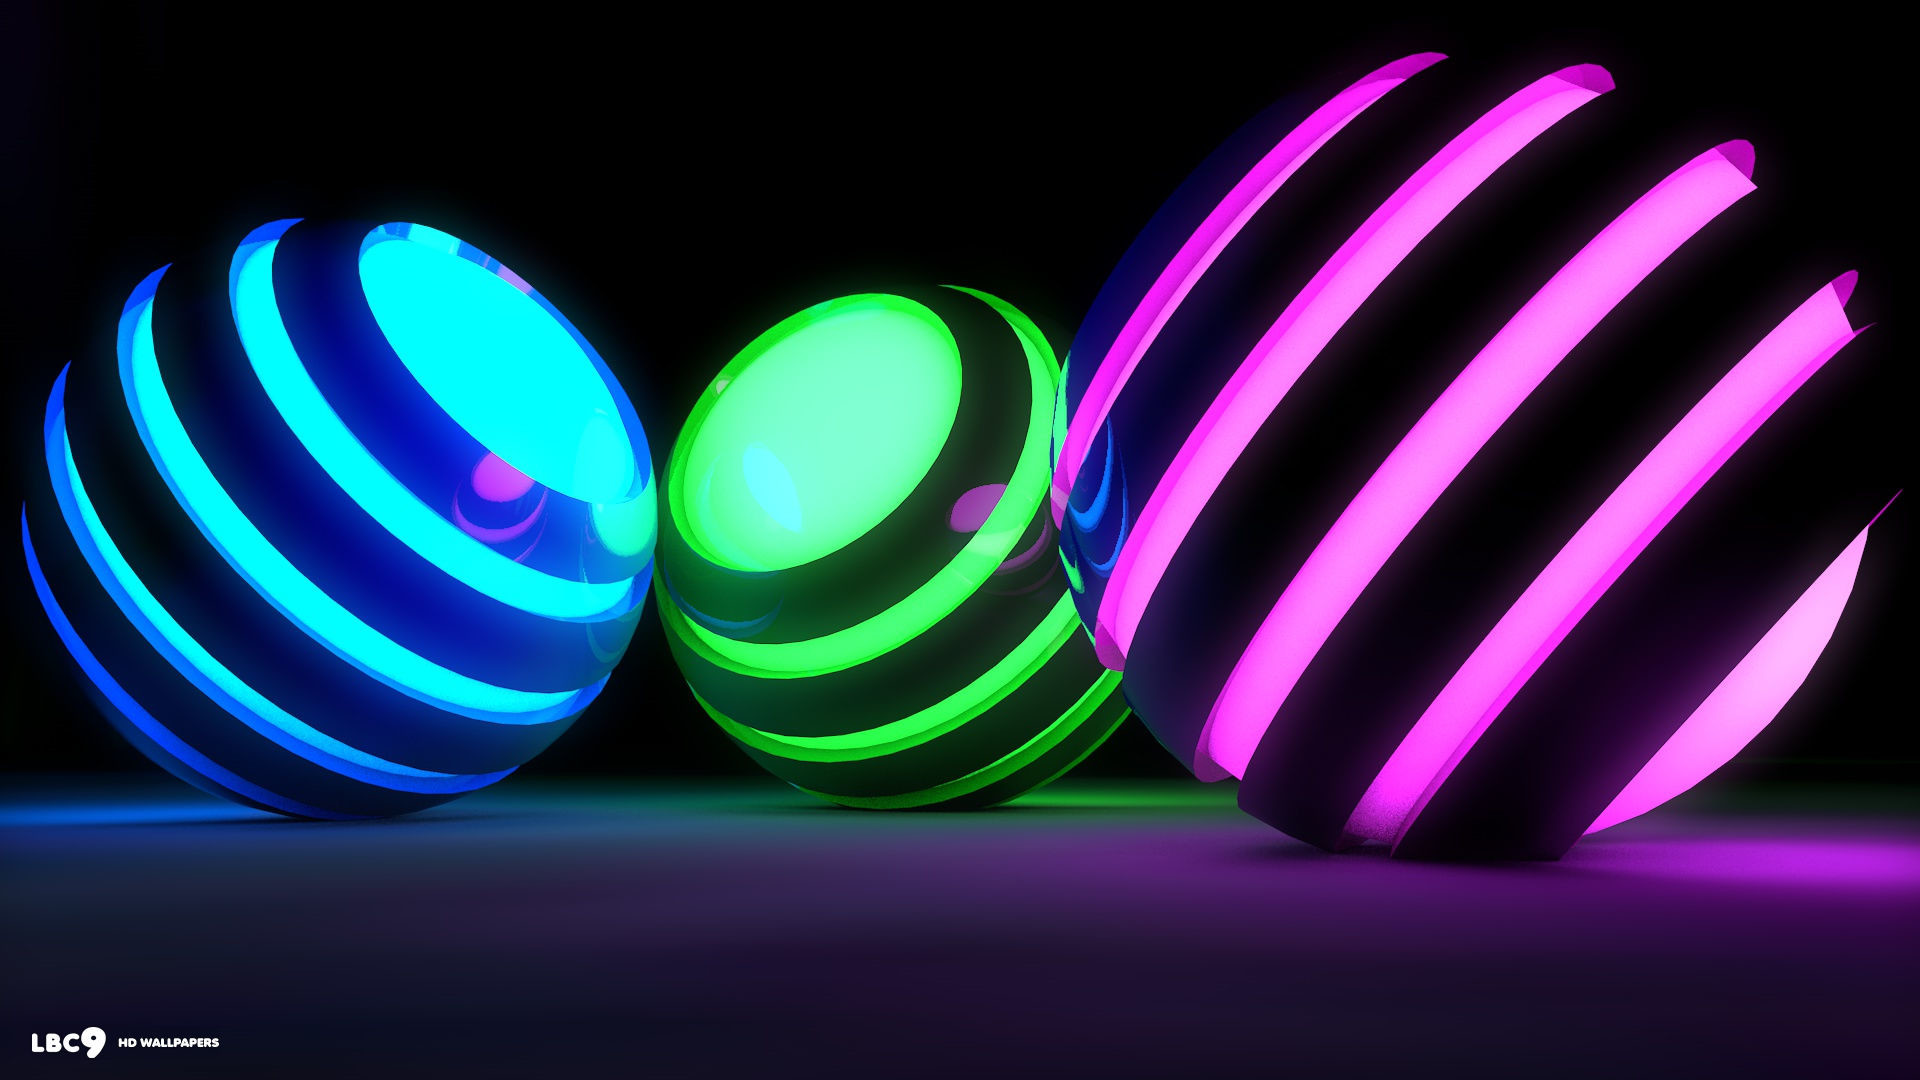 Cool Neon Dragon Backgrounds – HD Wallpapers | In Neon Color | Pinterest |  Neon colors, Background hd wallpaper and Neon